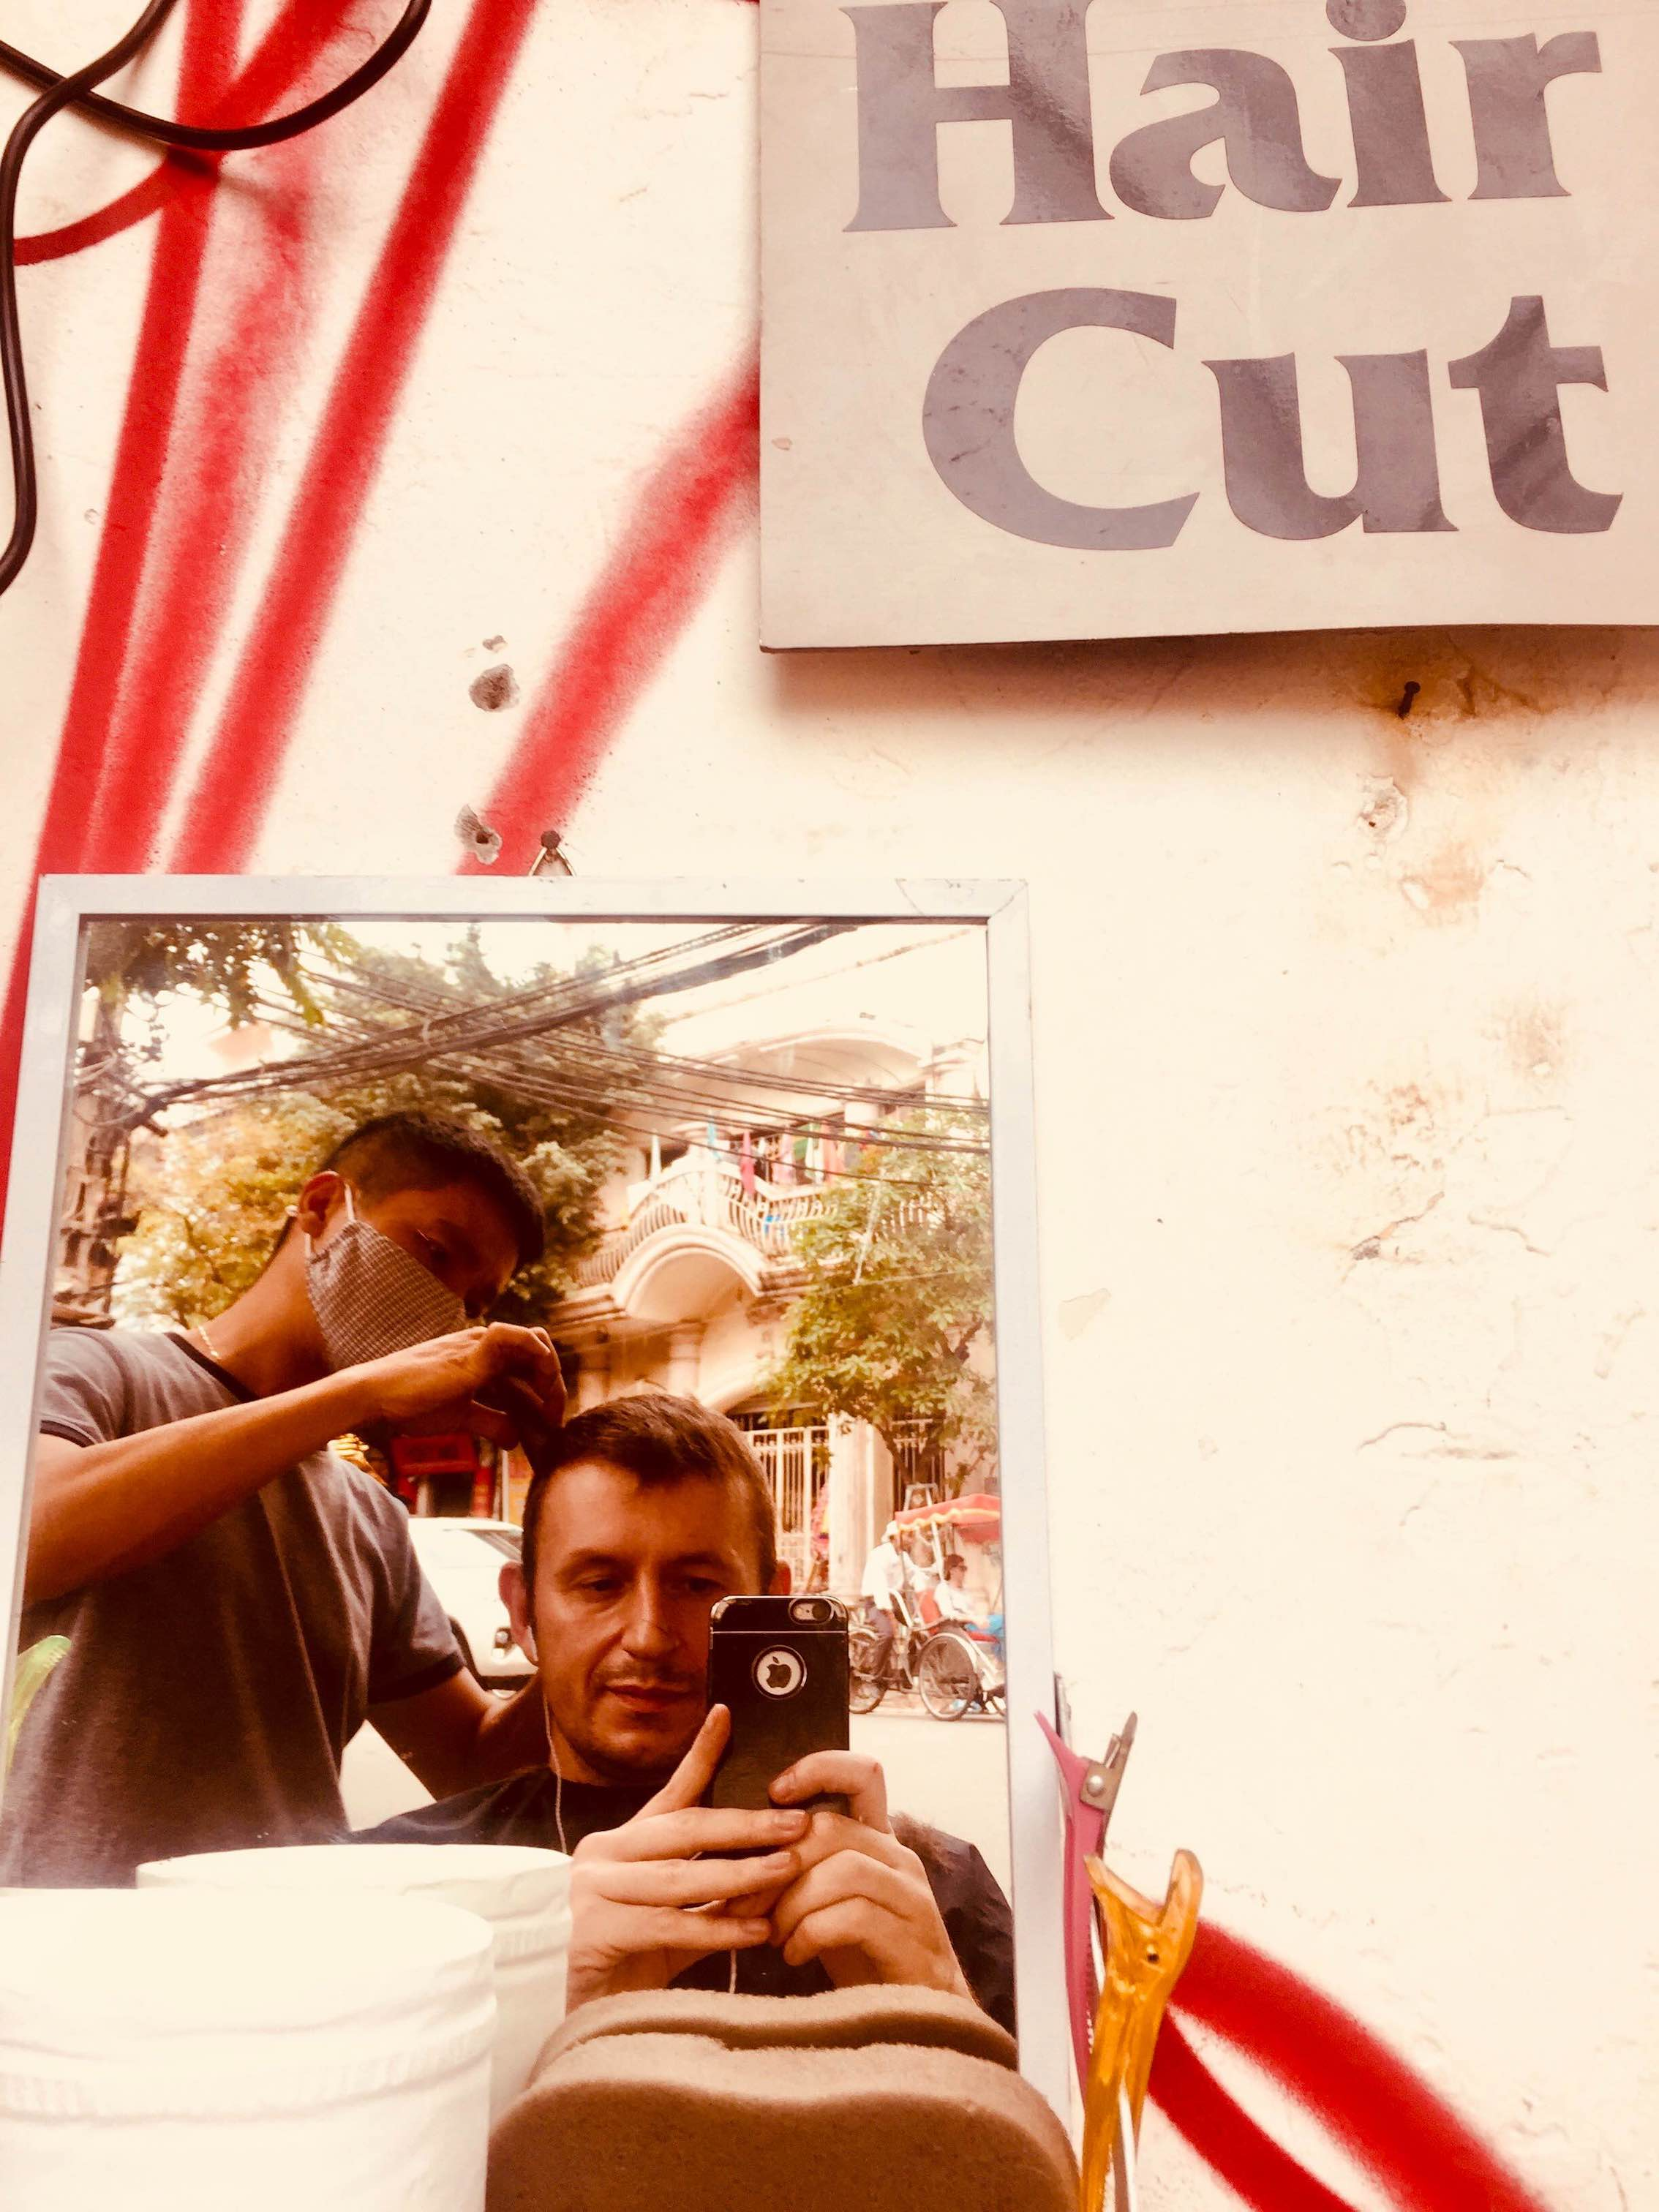 Getting a haircut in Hanoi's Old Quarter.